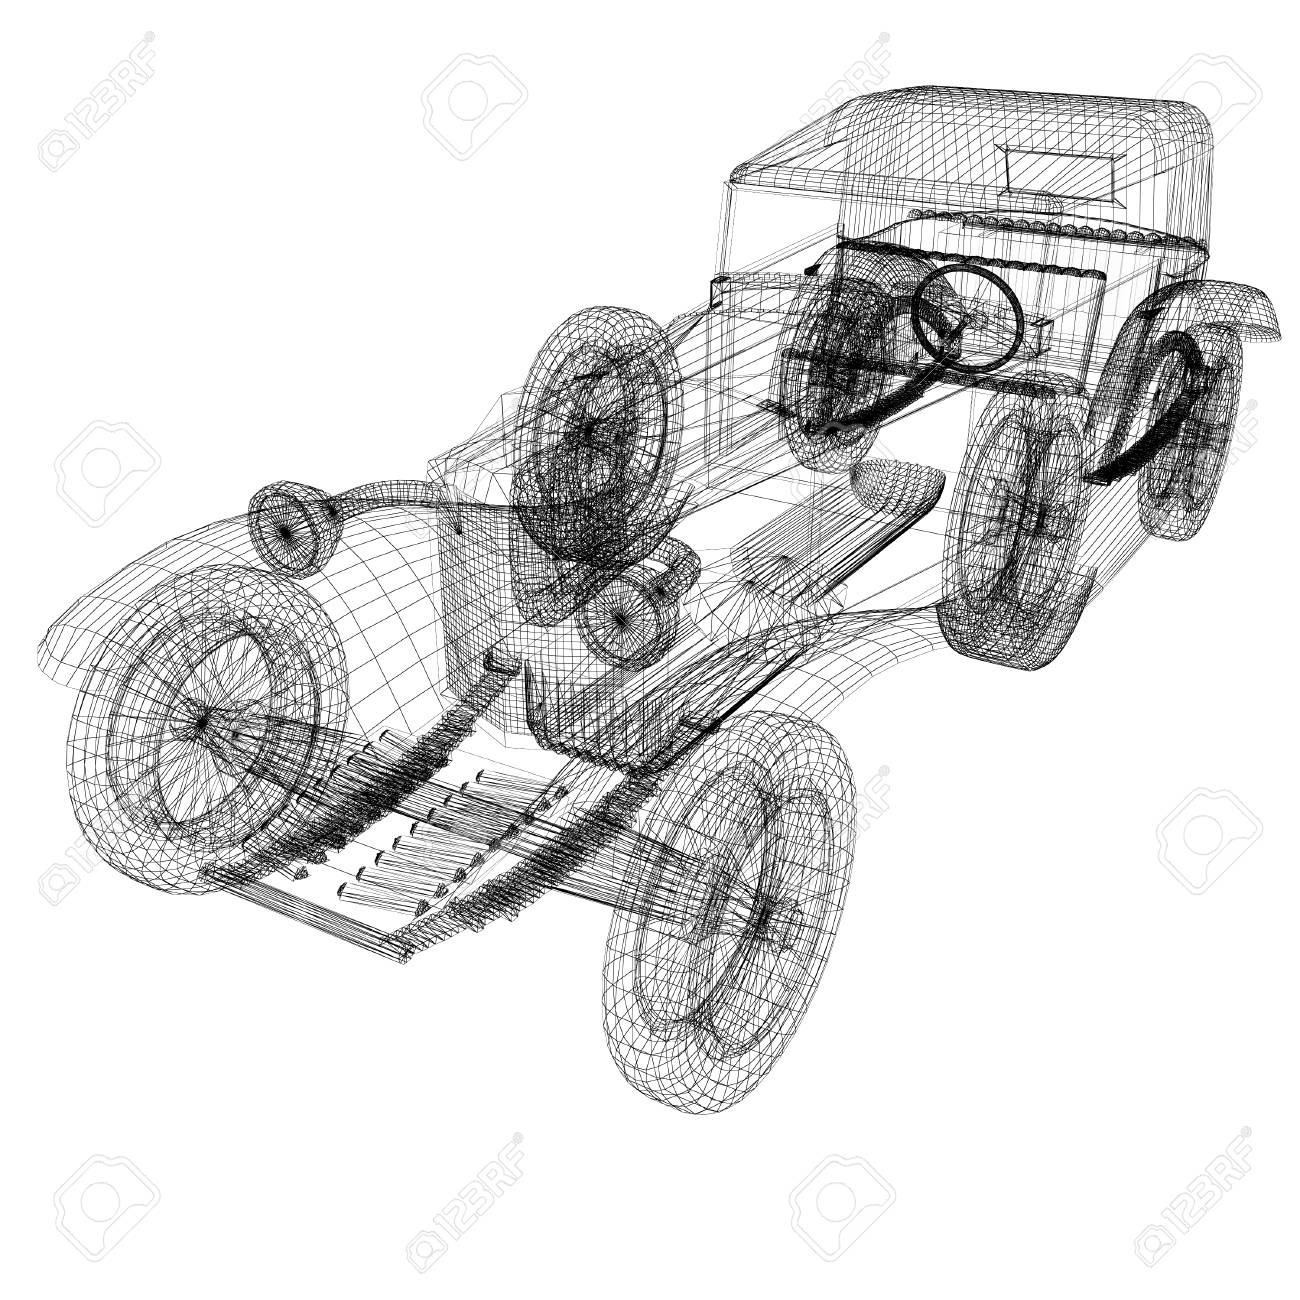 hight resolution of 3d model retro car stock photo 45815759